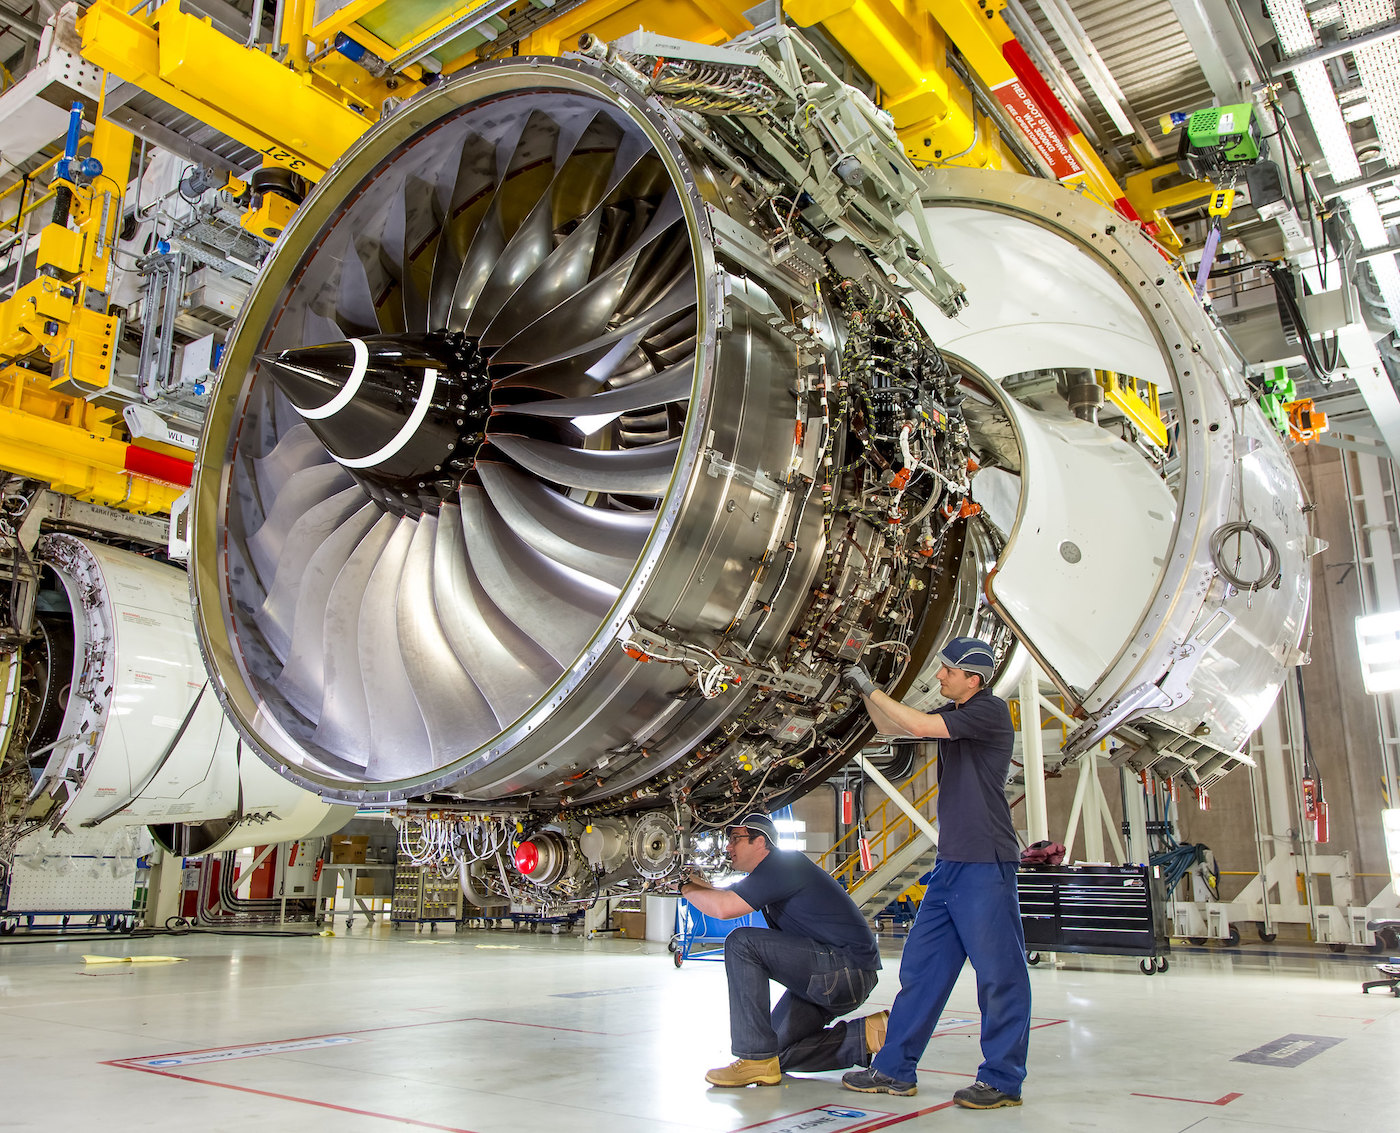 Civil Aviation Decline Forces Rolls-Royce To Cut 9,000